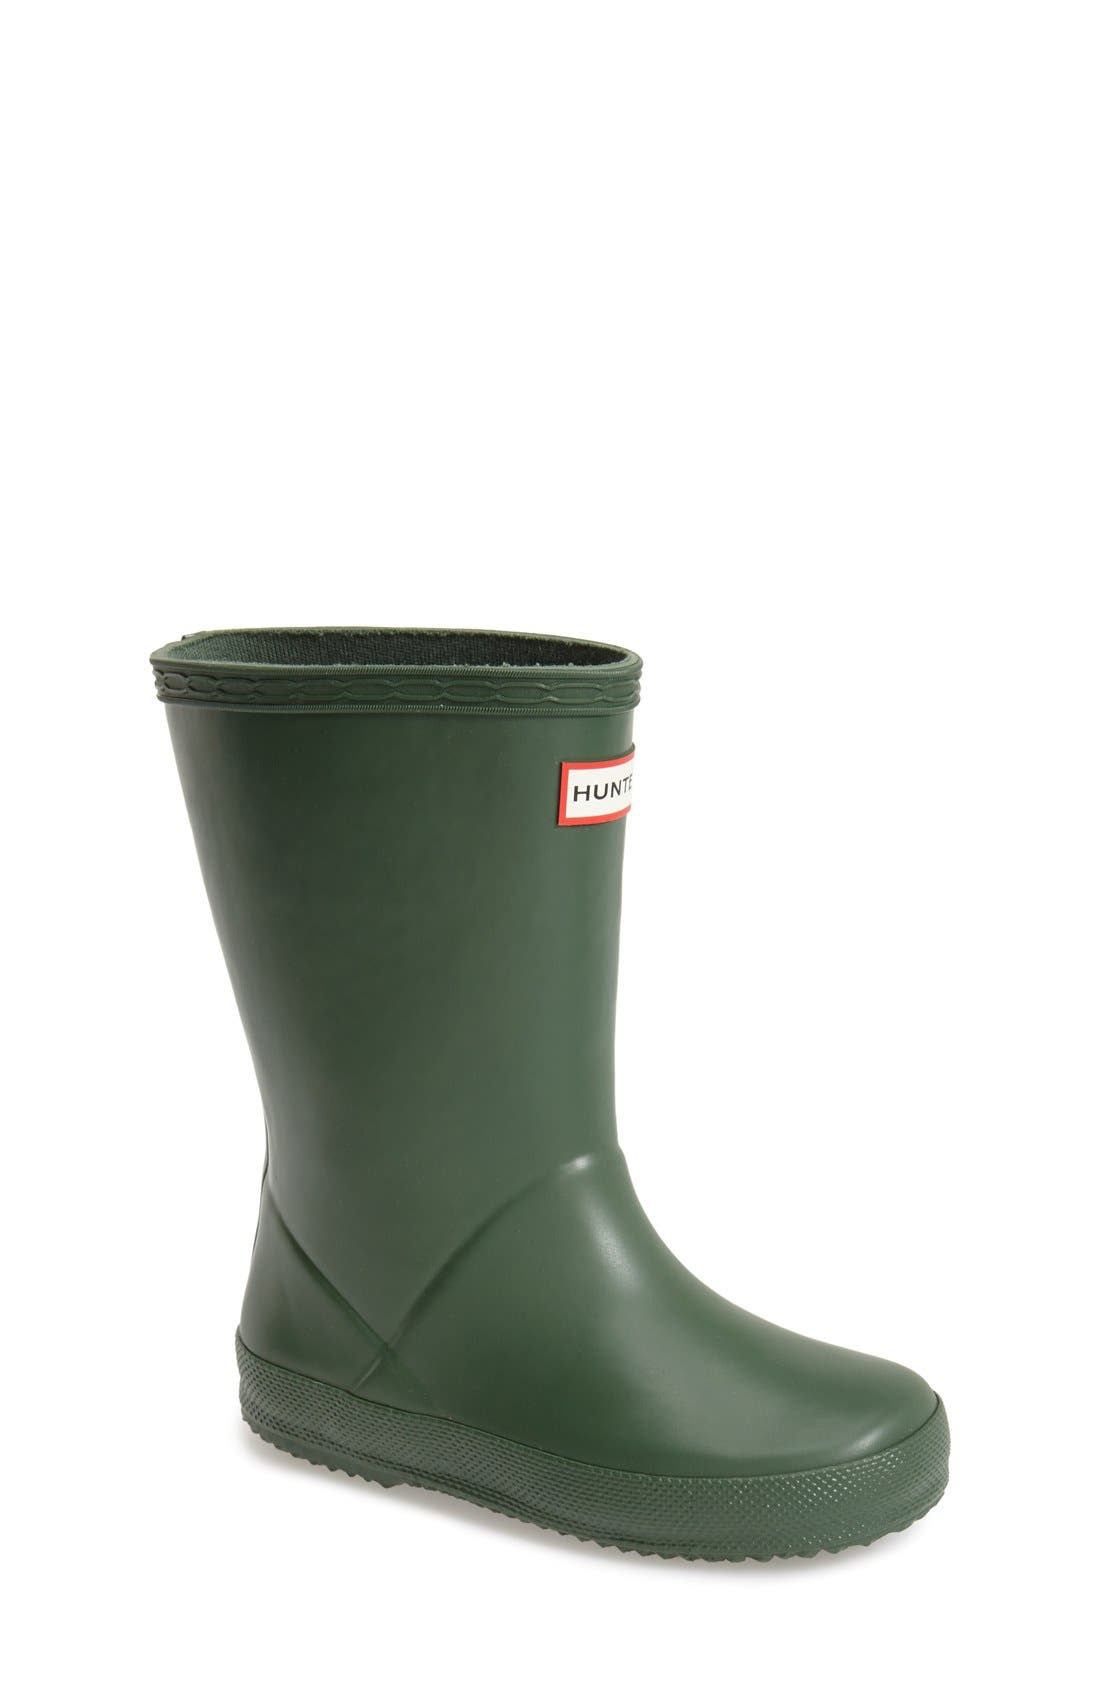 Alternate Image 1 Selected - Hunter 'First Classic' Rain Boot (Walker, Toddler & Little Kid)